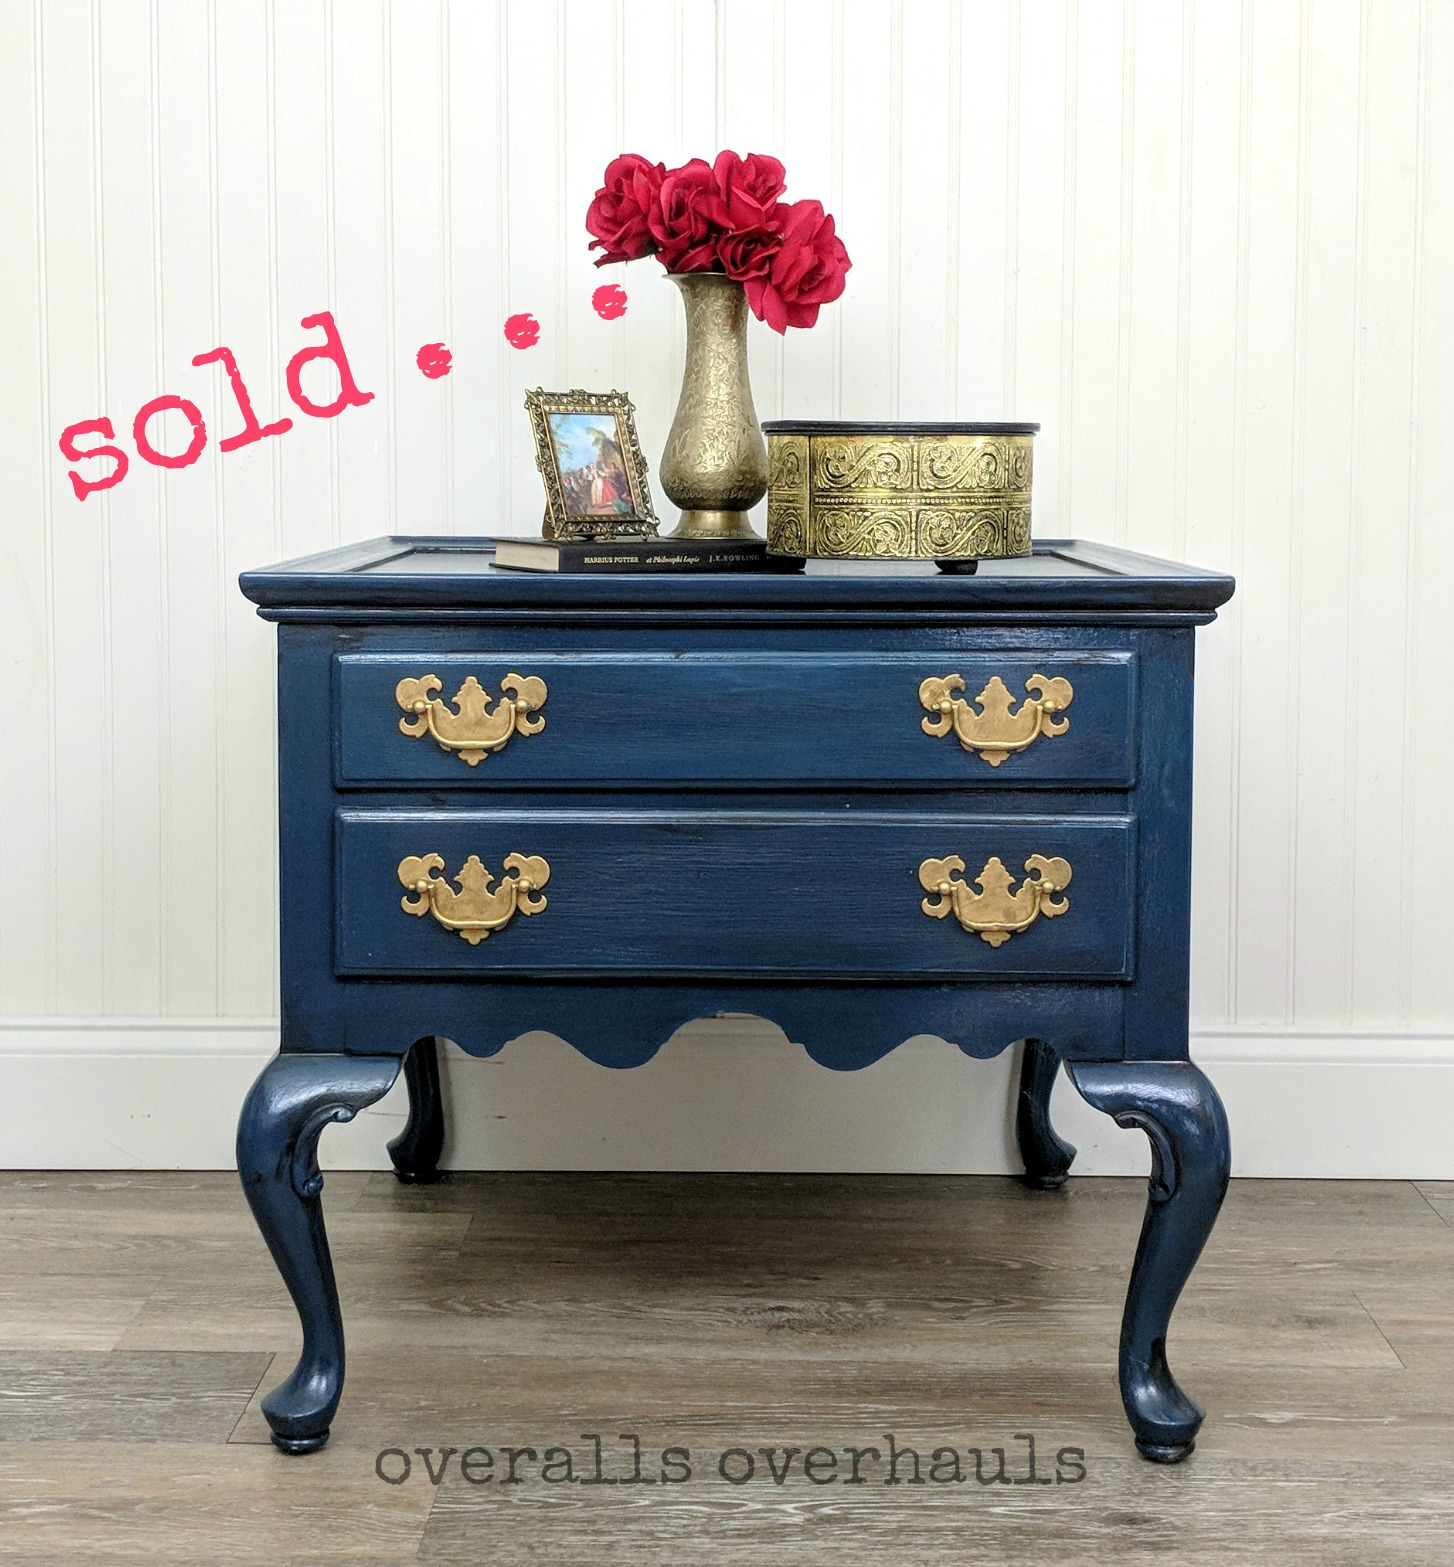 Sweet starry night night stand. Unavailable. Finish can be recreated for a piece you own or a piece I help you find.